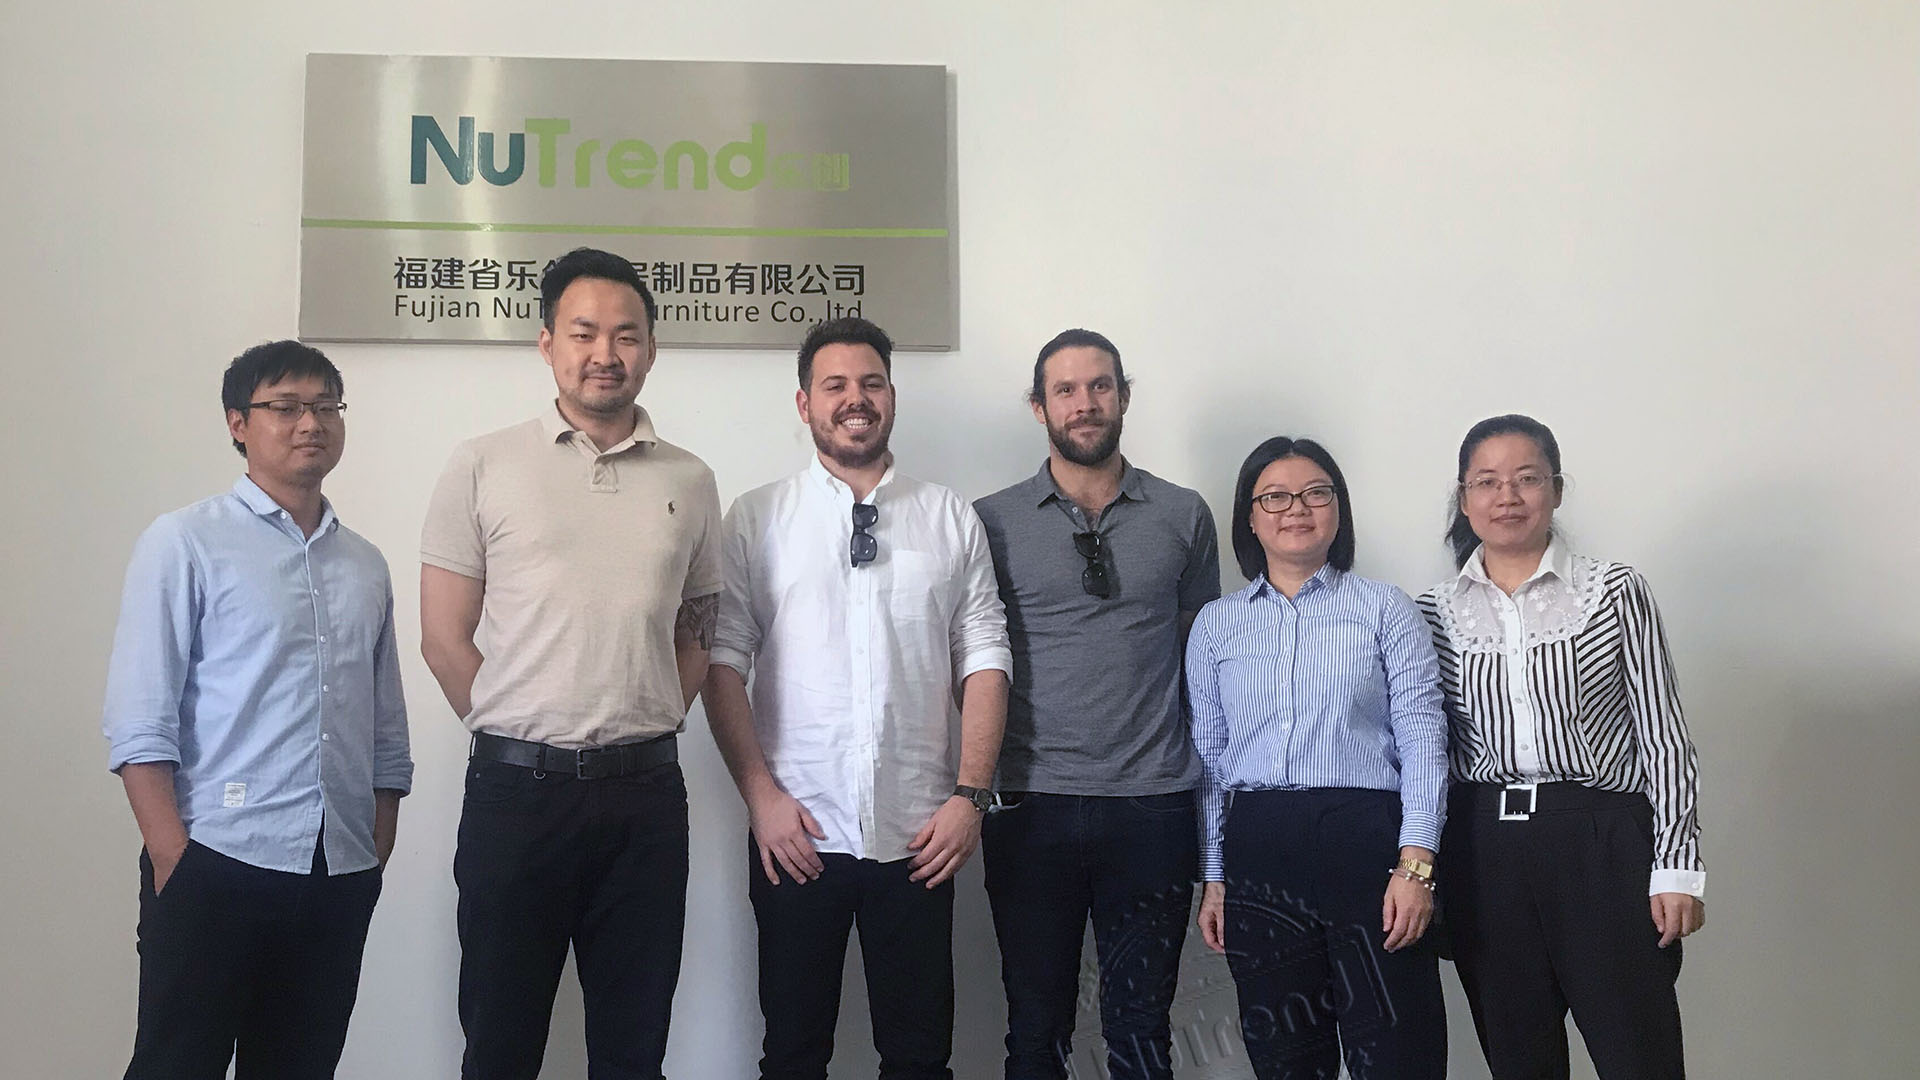 Customers and NuTrend Team